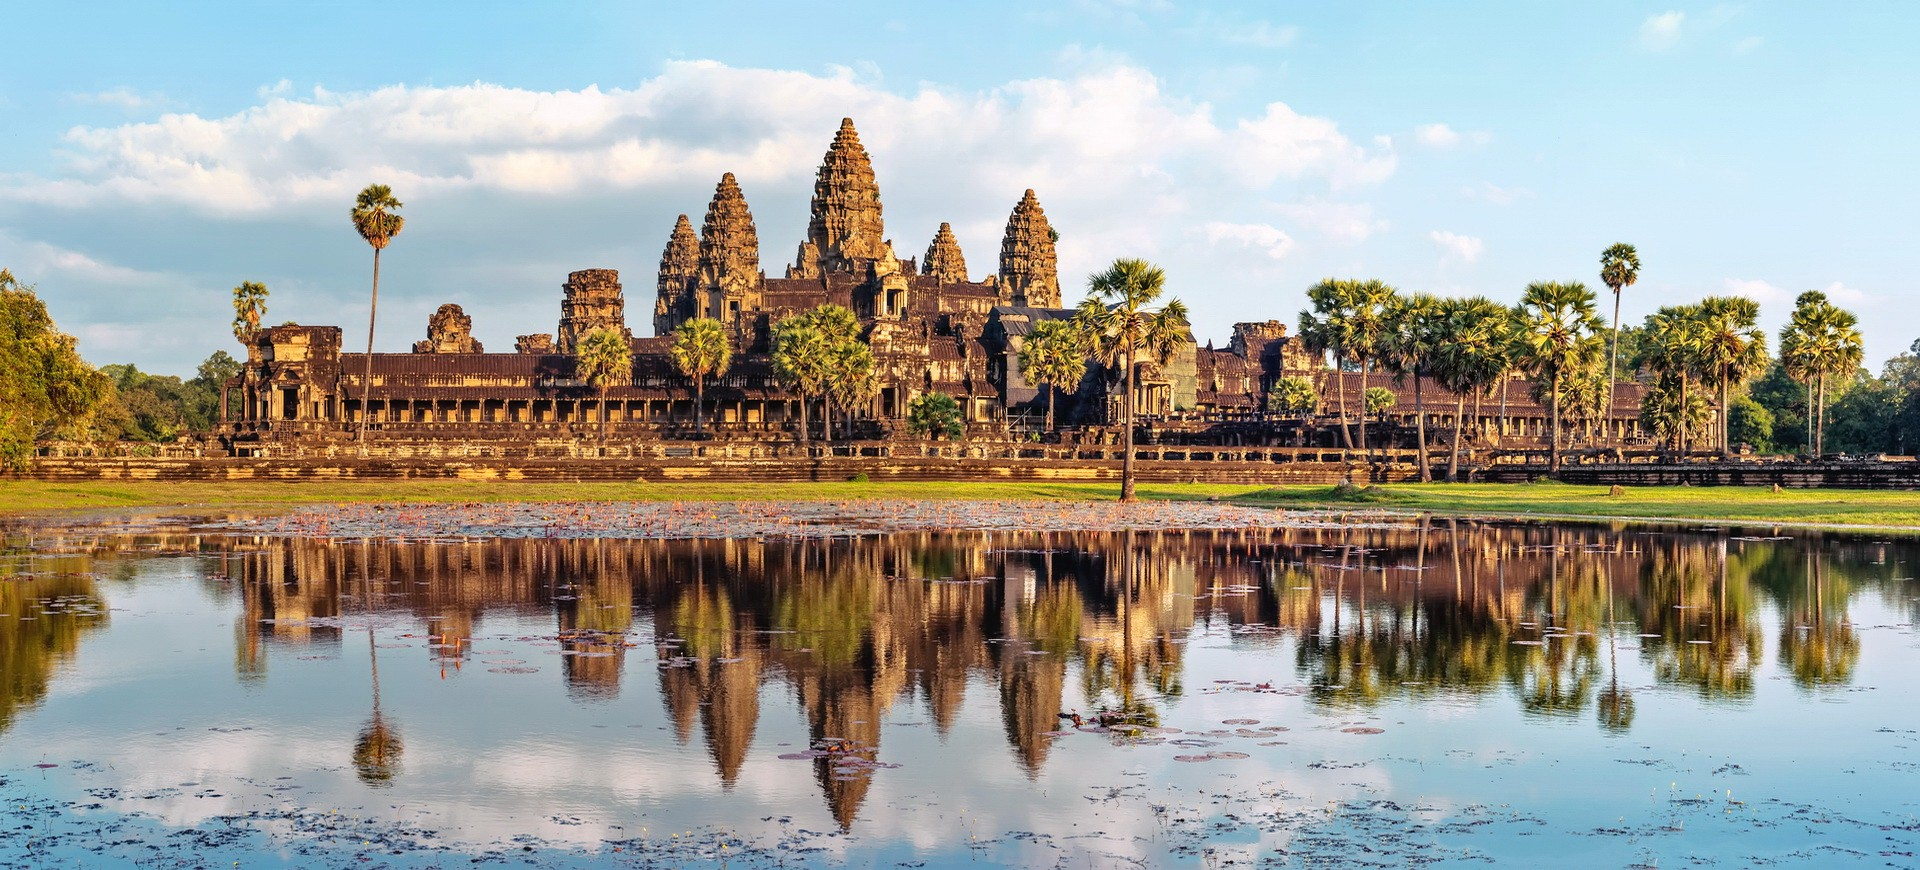 Cambodge Siem Reap Temple Angkor Wat architecture Khmer